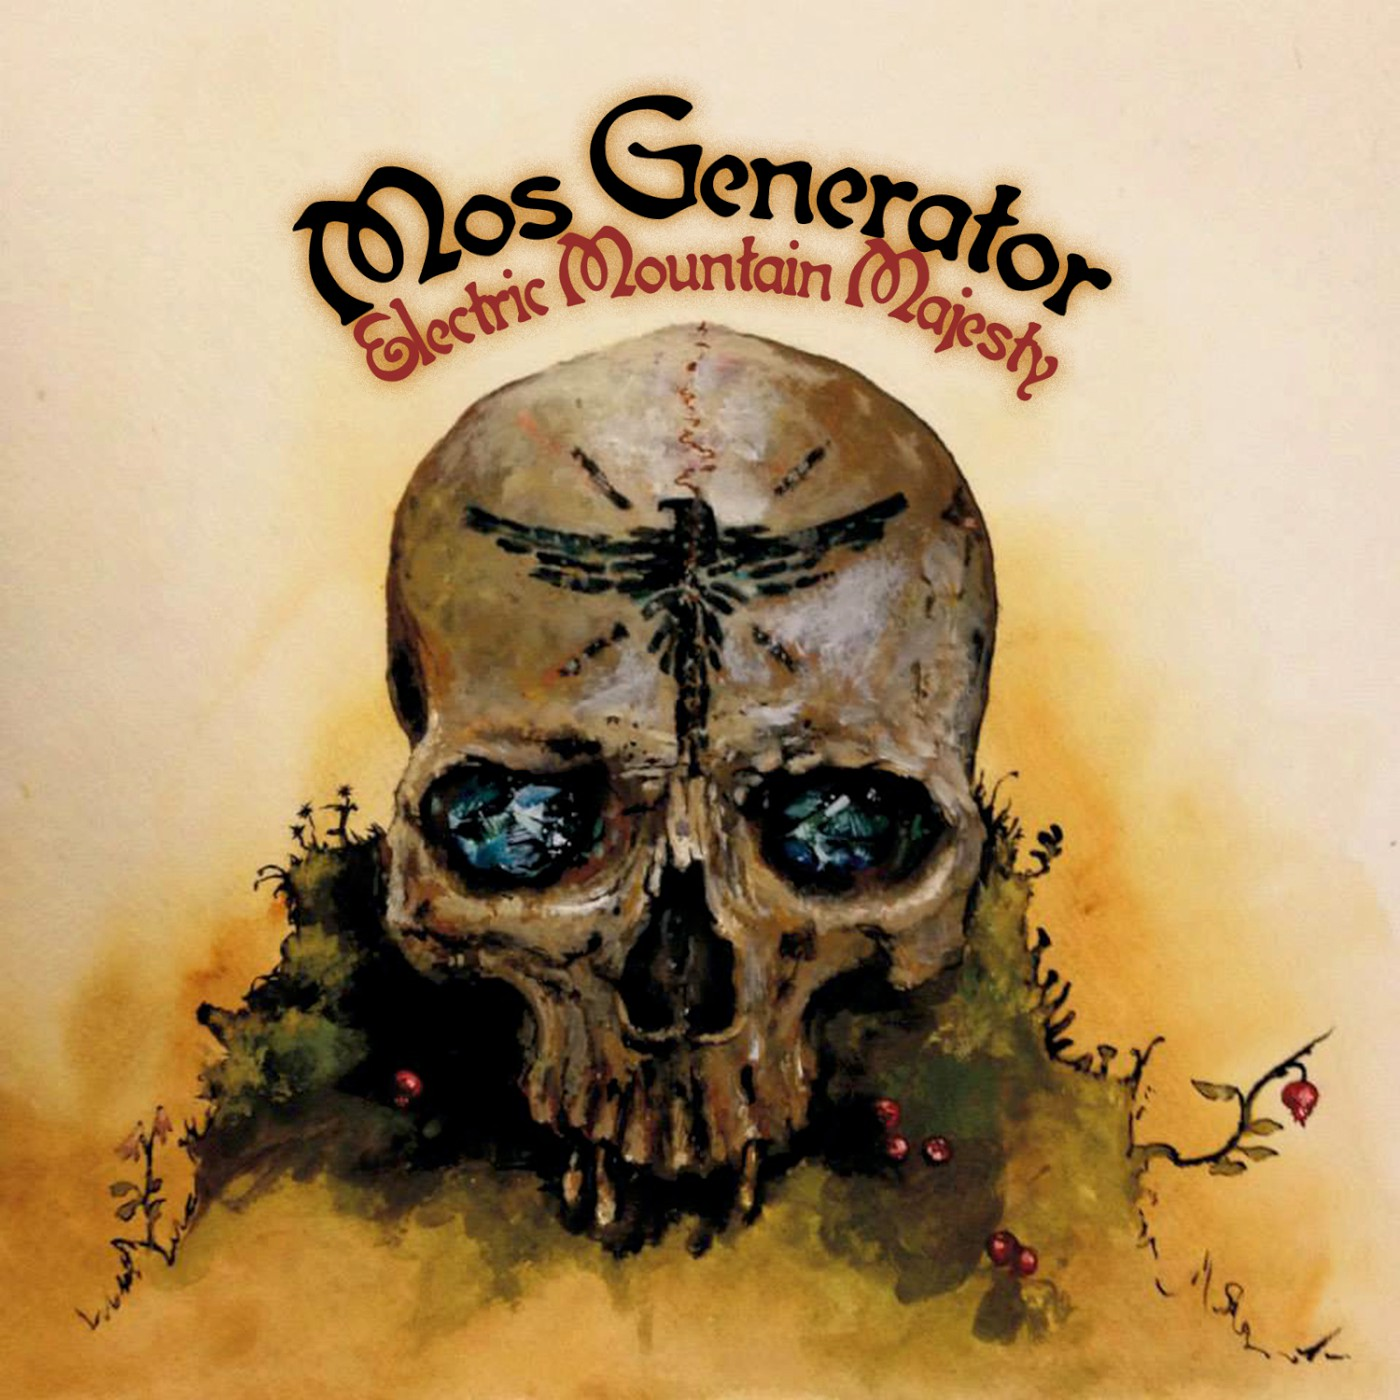 mos-generator-electric-mountain-majesty